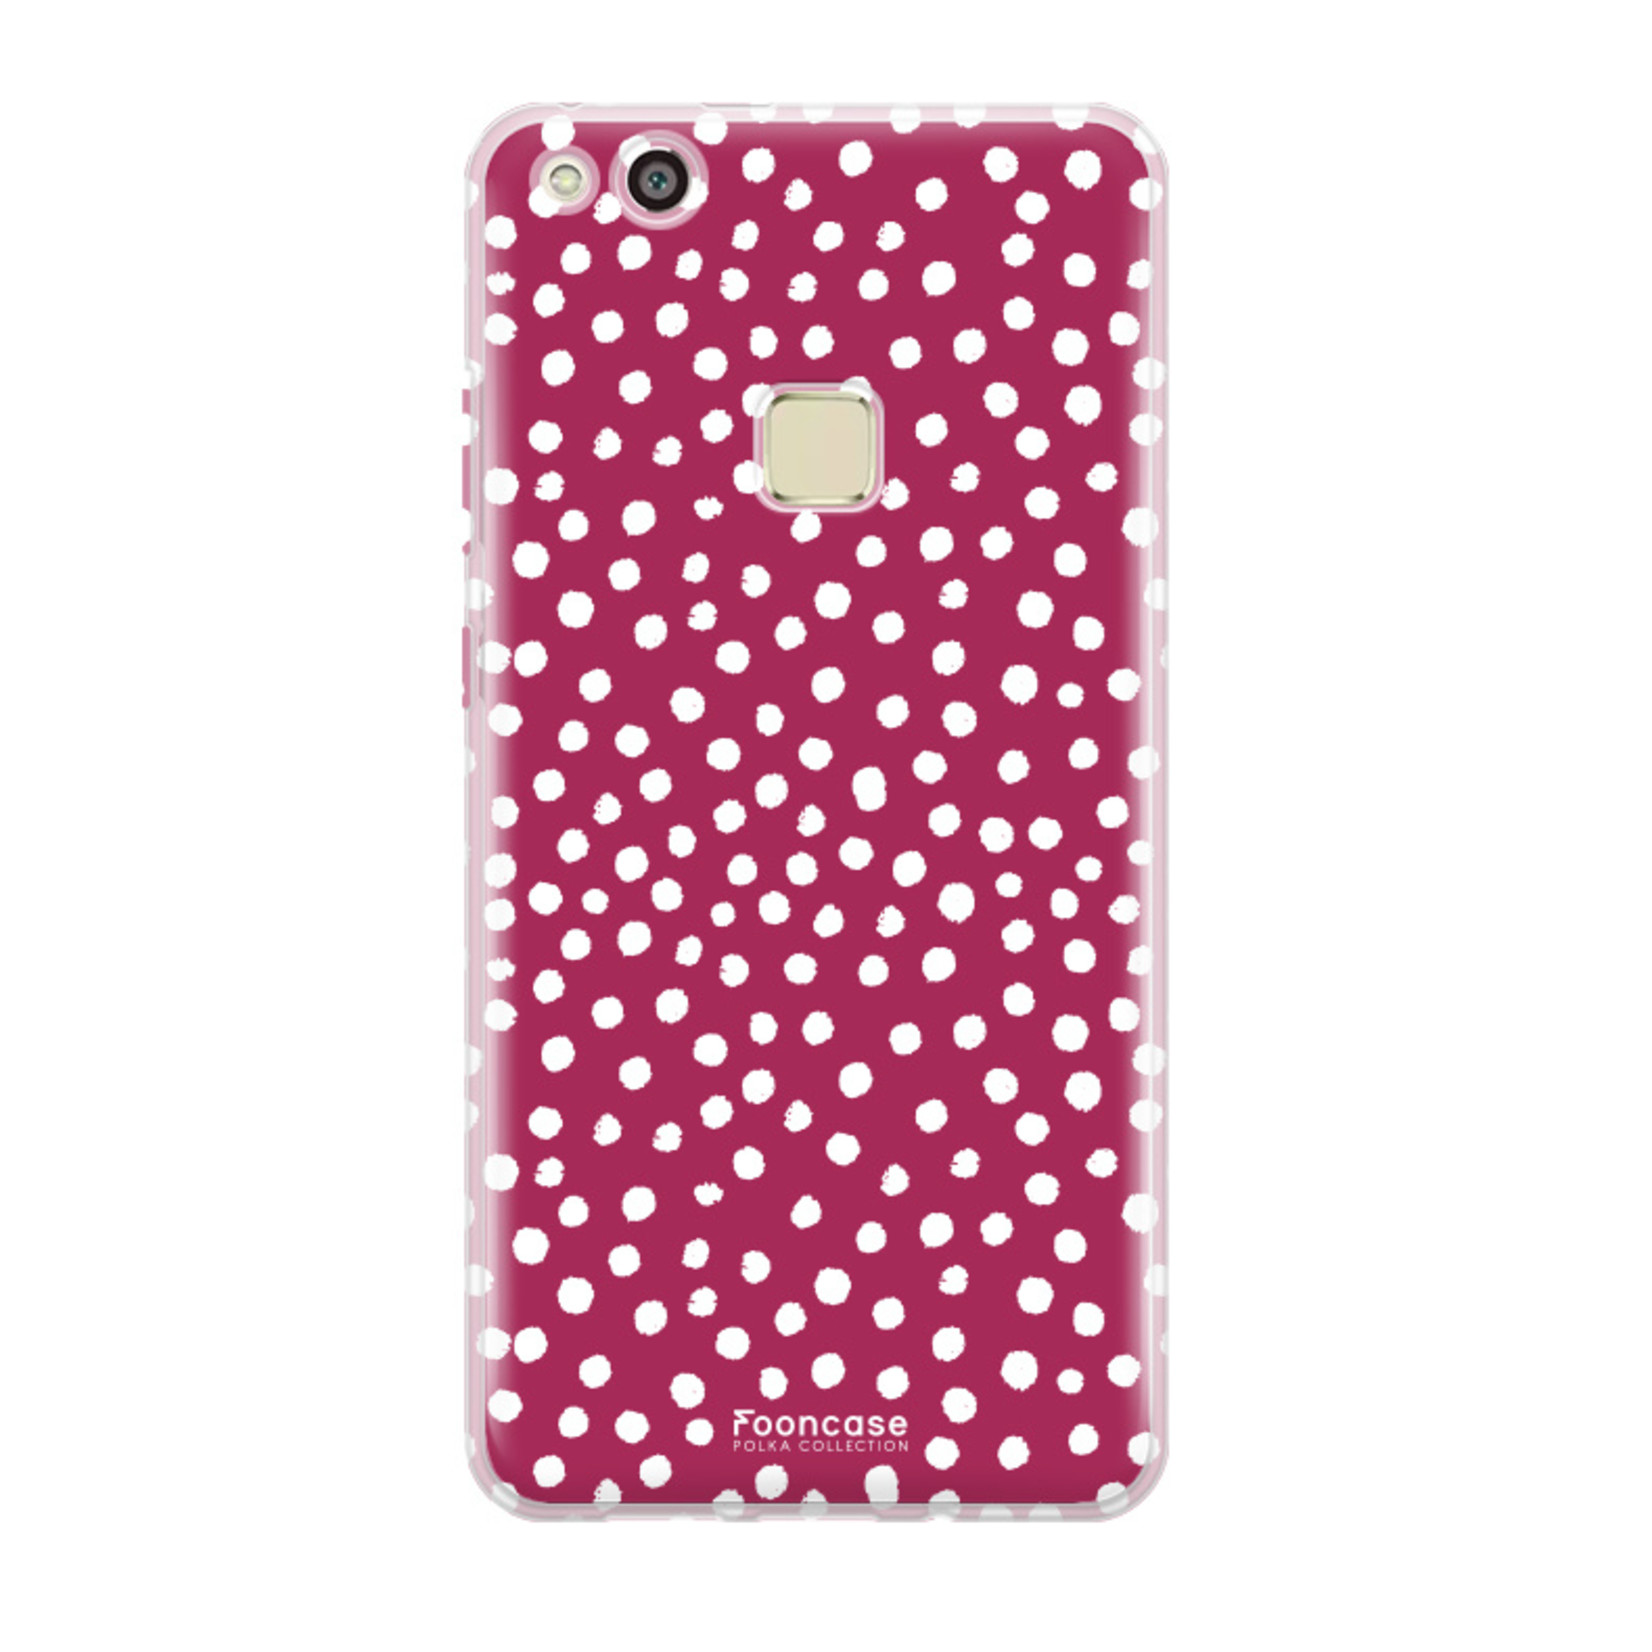 FOONCASE Huawei P10 Lite - POLKA COLLECTION / Rot